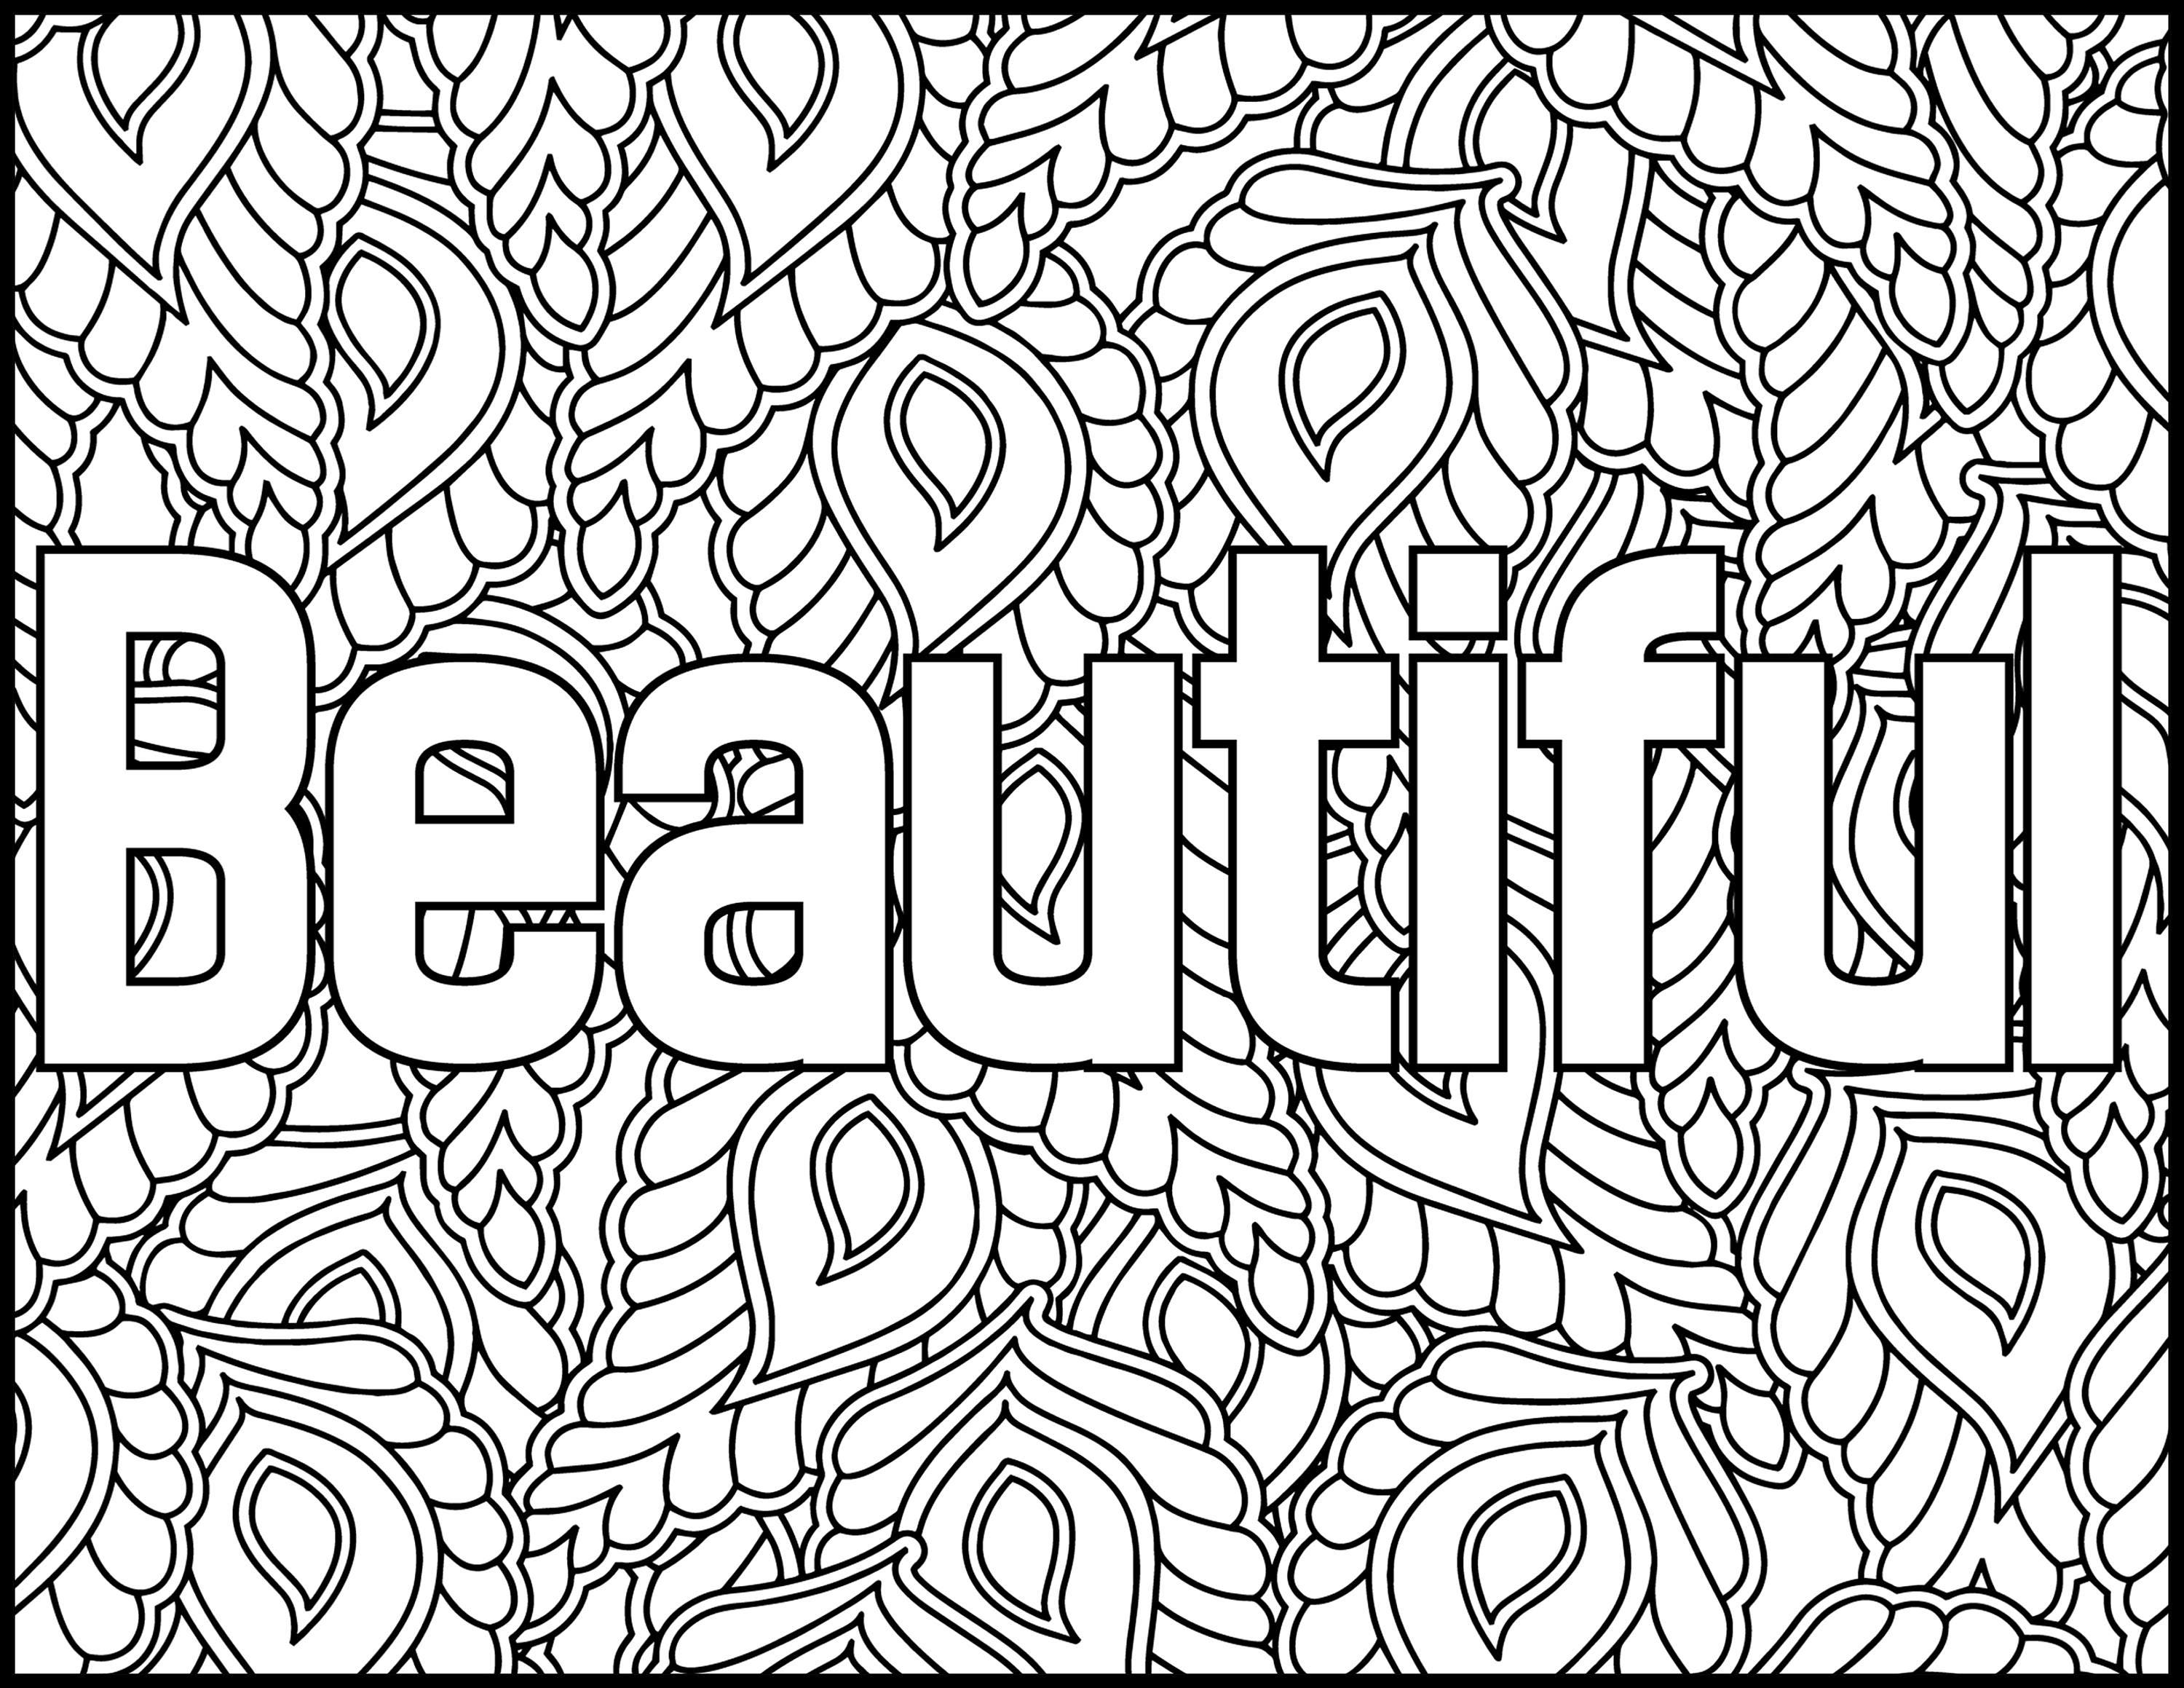 positive affirmations coloring pages for adults beautiful. Black Bedroom Furniture Sets. Home Design Ideas